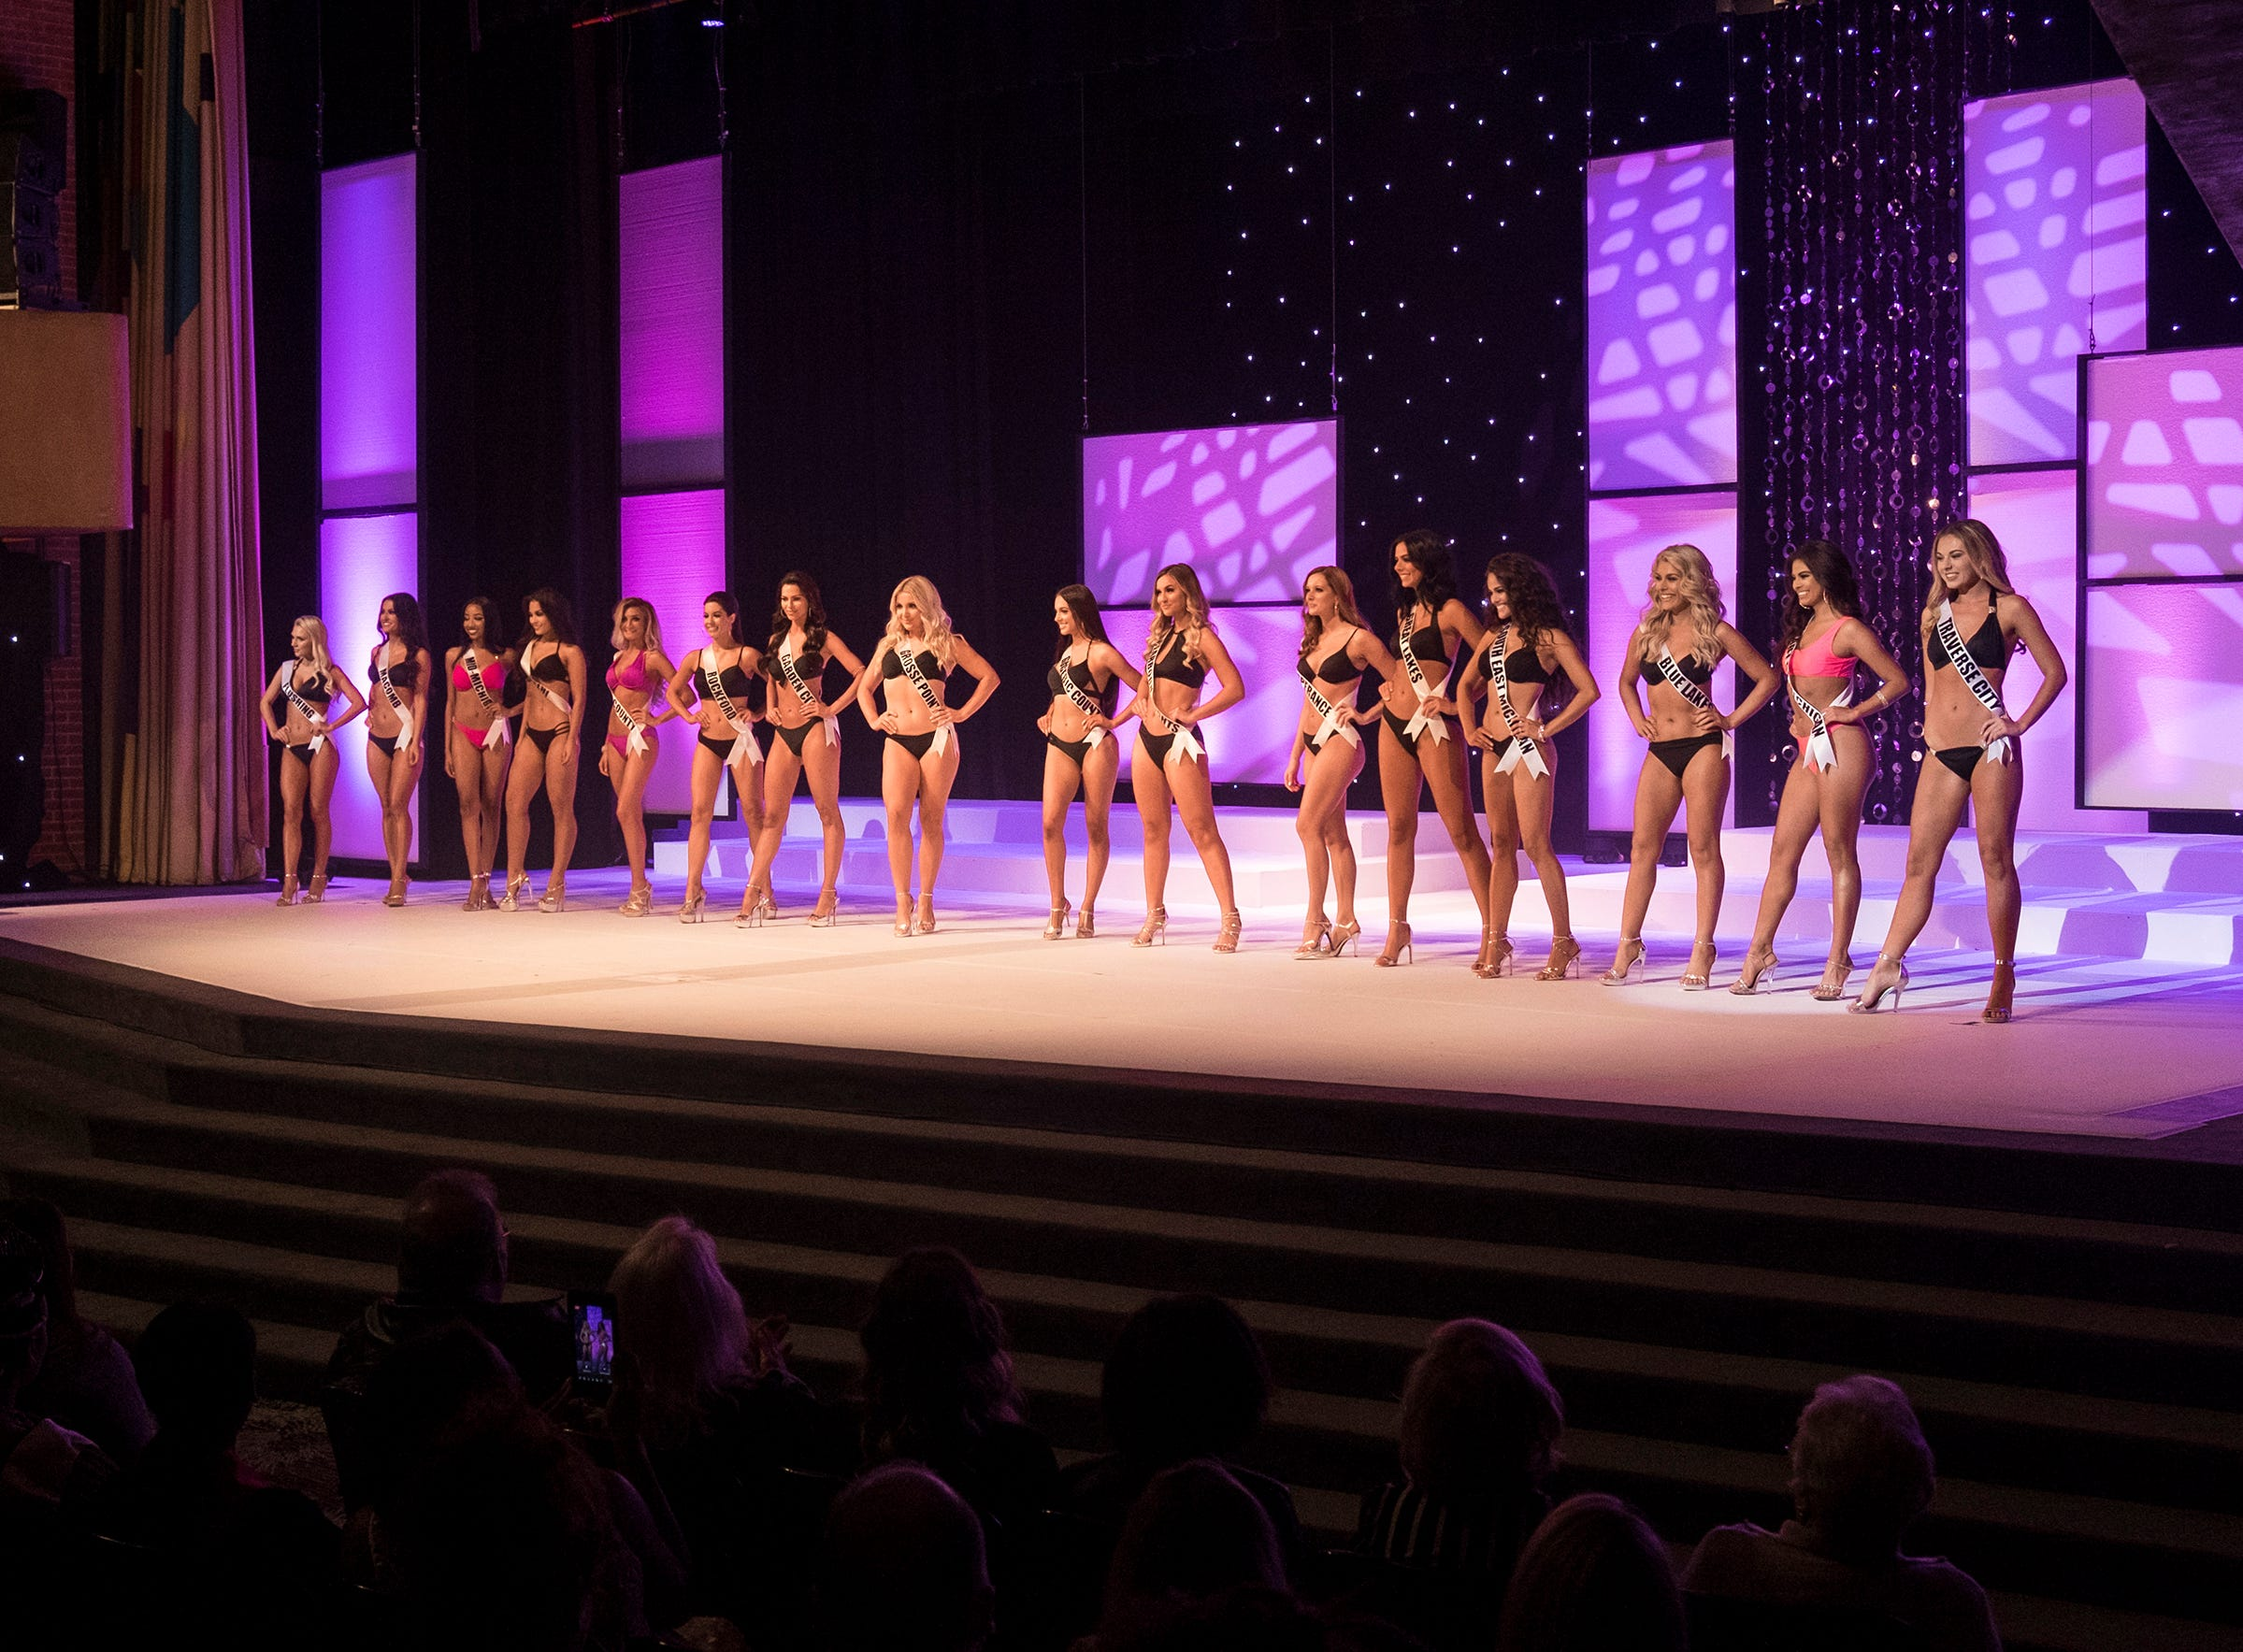 The 16 semifinalists in the Miss Michigan USA pageant line the stage after competing in the swimsuit portion Saturday, Sept. 22, 2018 at McMorran Theater.